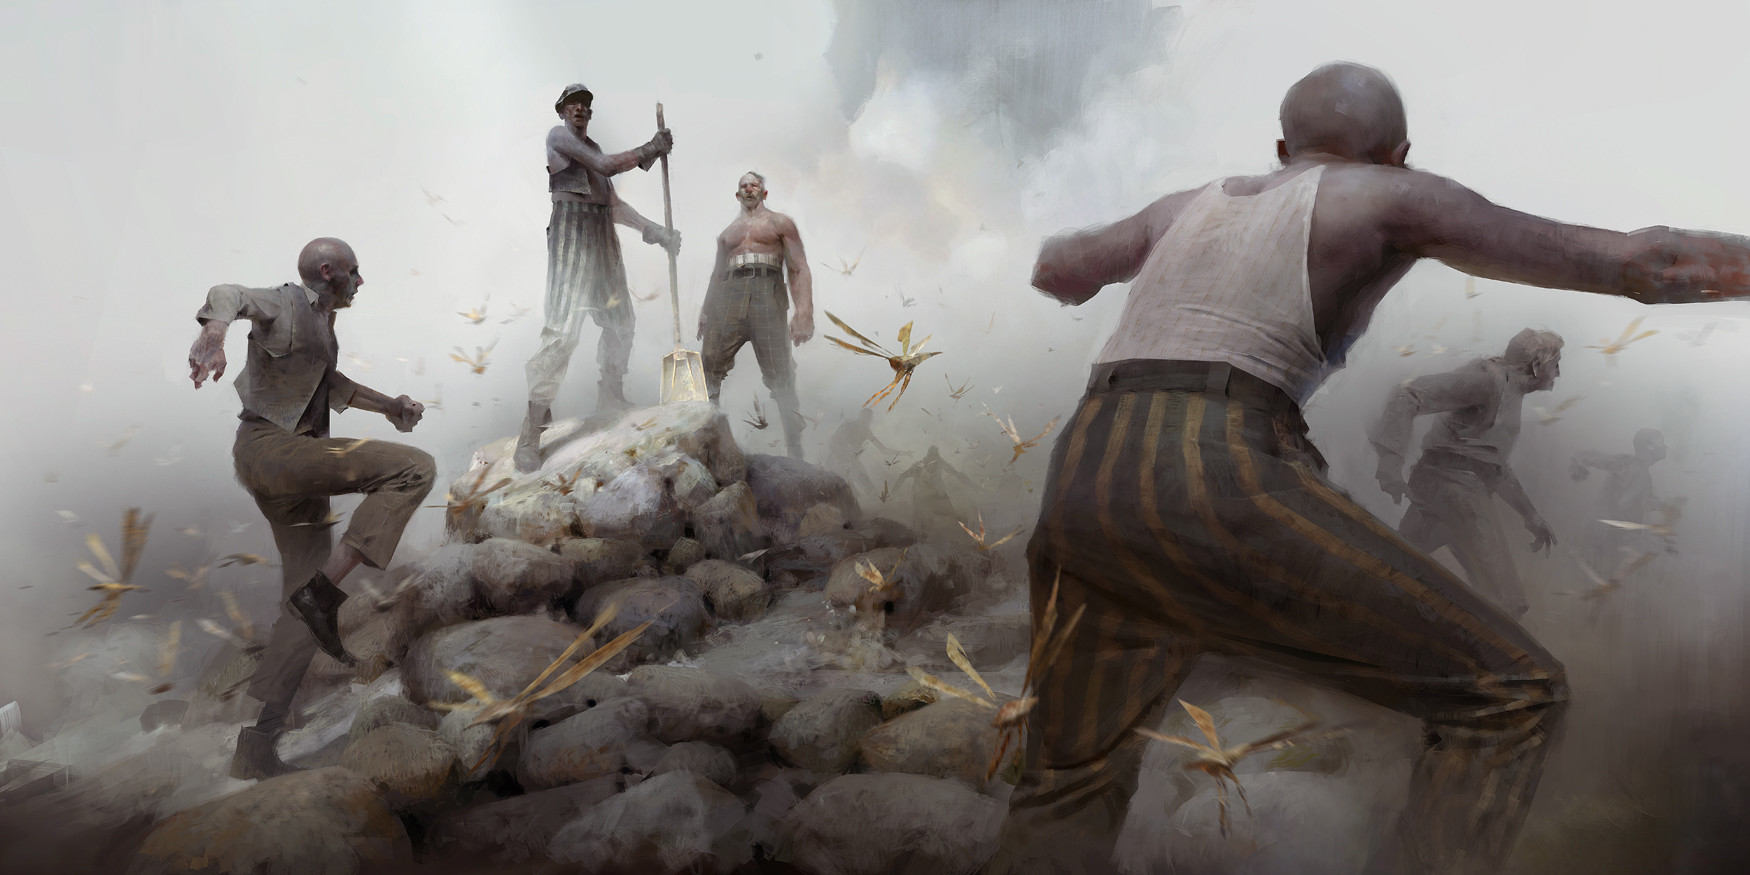 Piotr Jablonsky Digital Painting Dishonored 2 Workers and Bloodflies